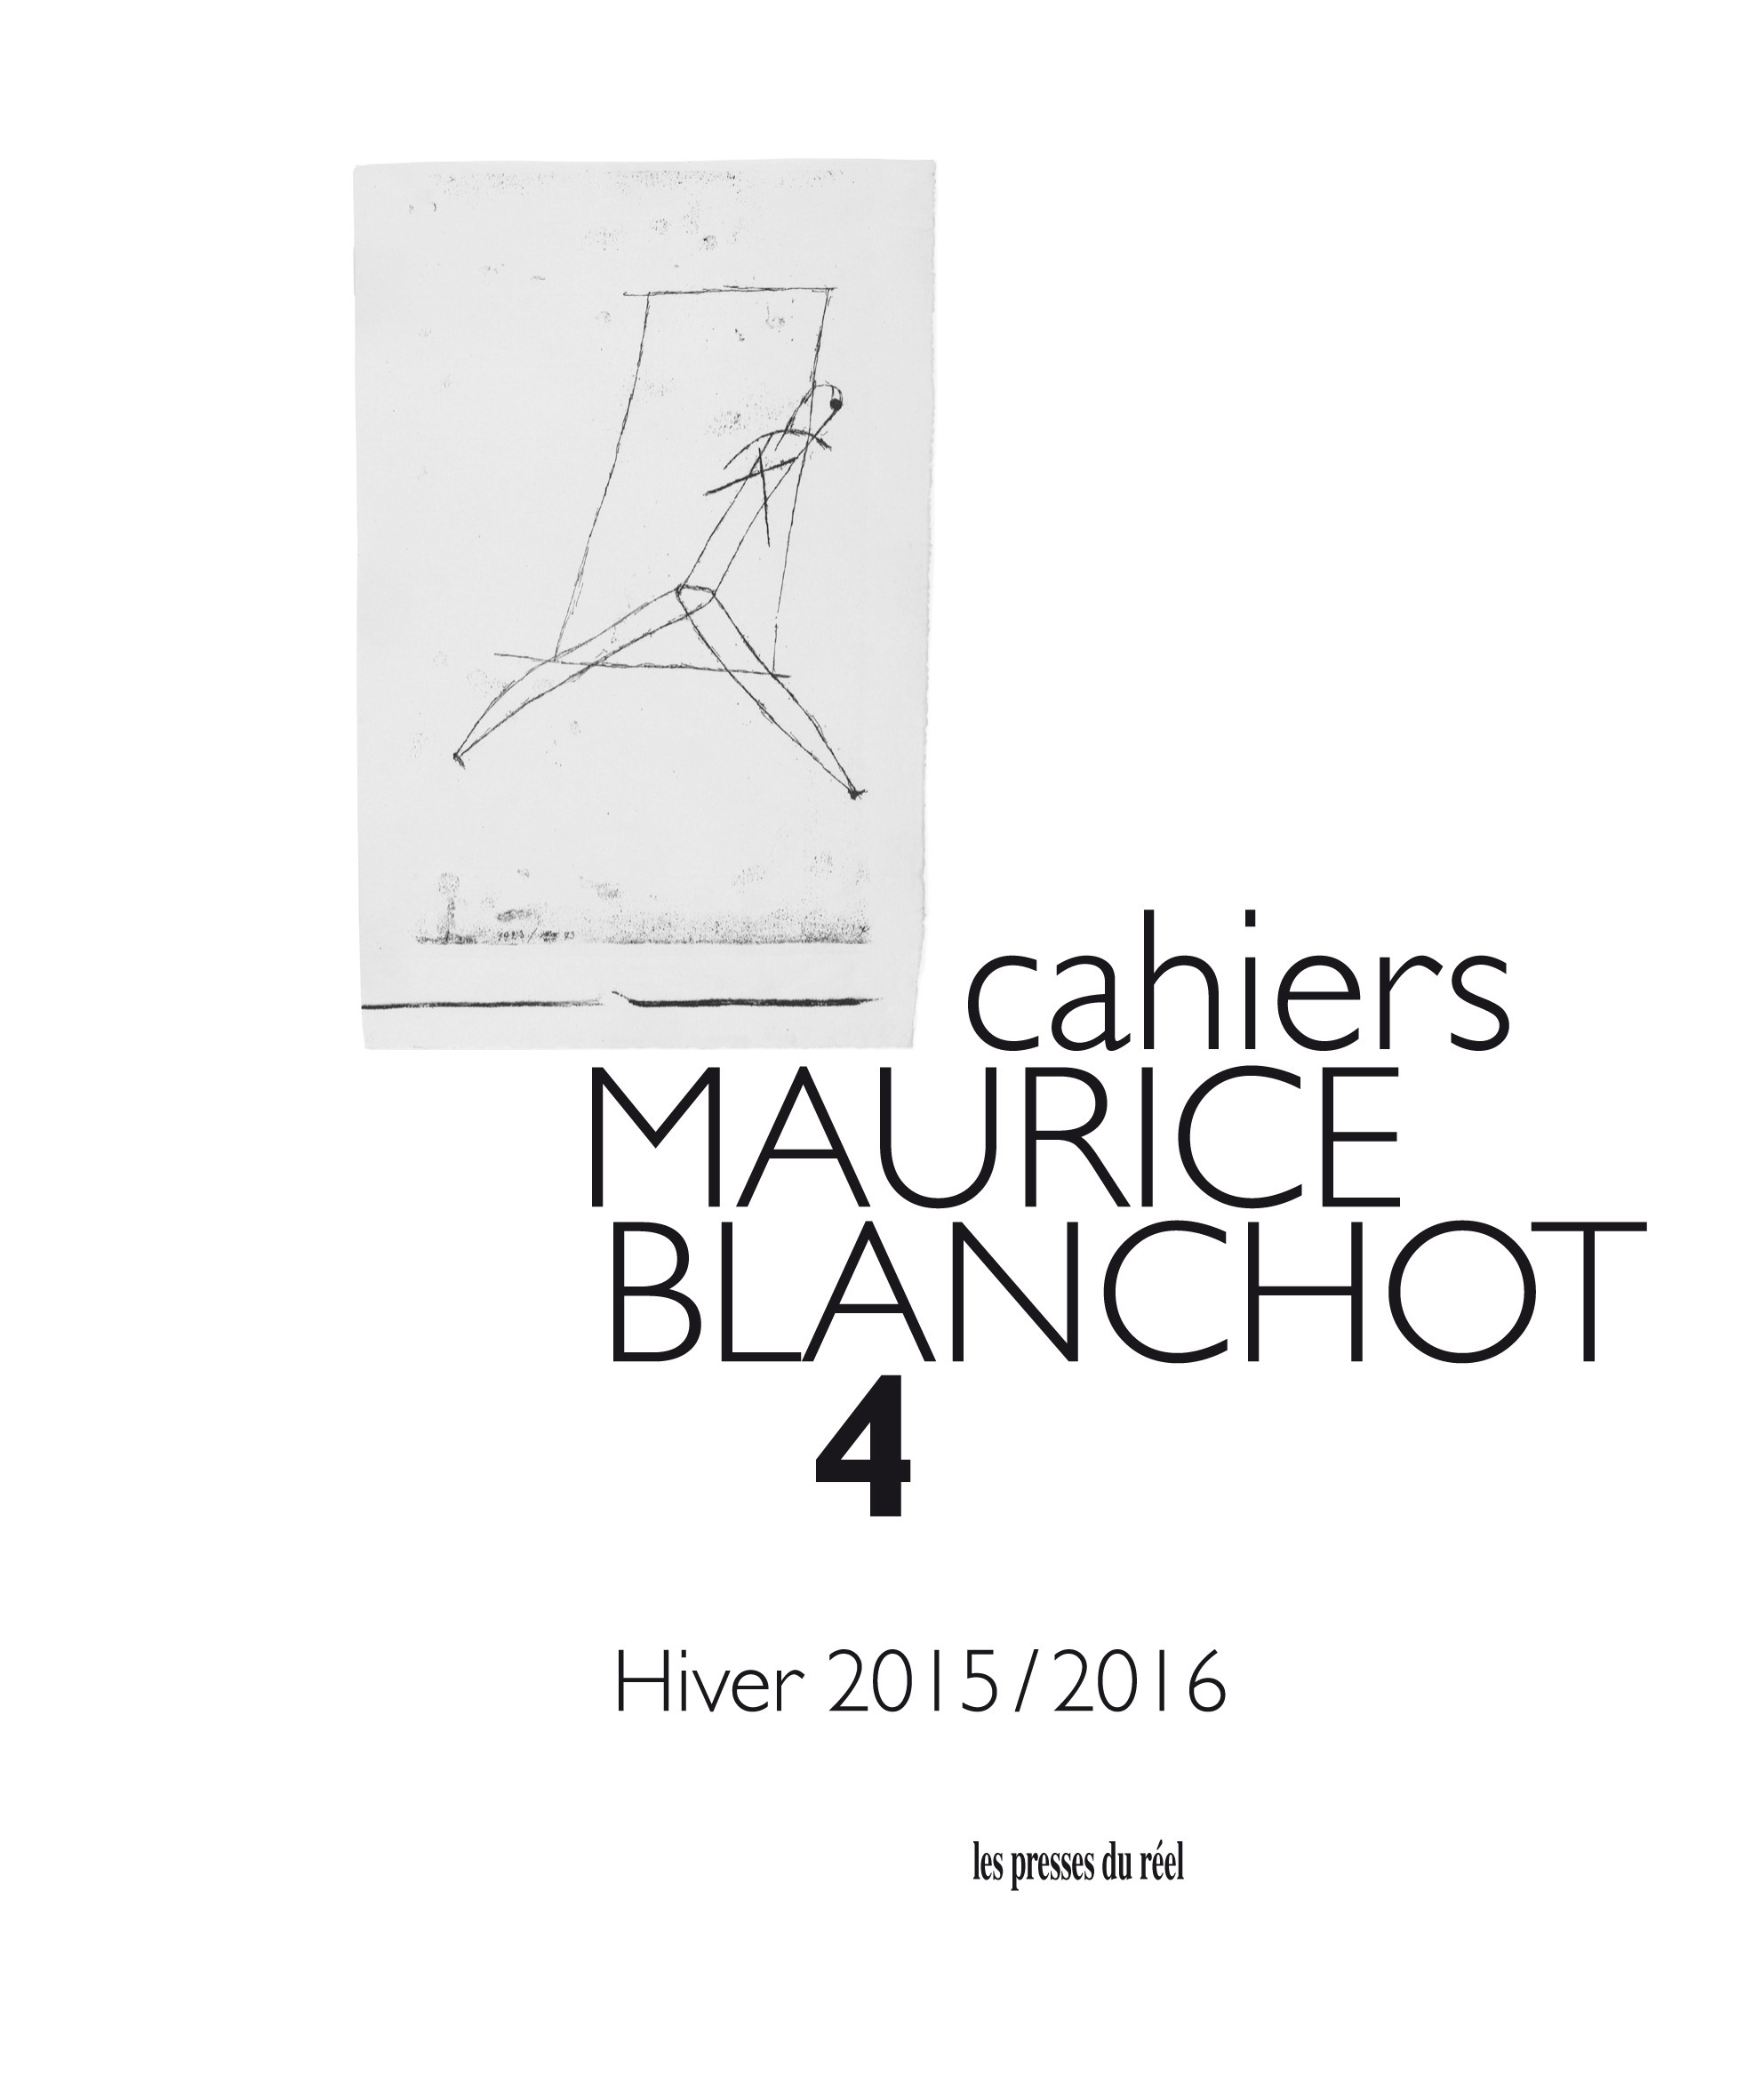 CAHIERS MAURICE BLANCHOT N.4 ; hiver 2015-2016